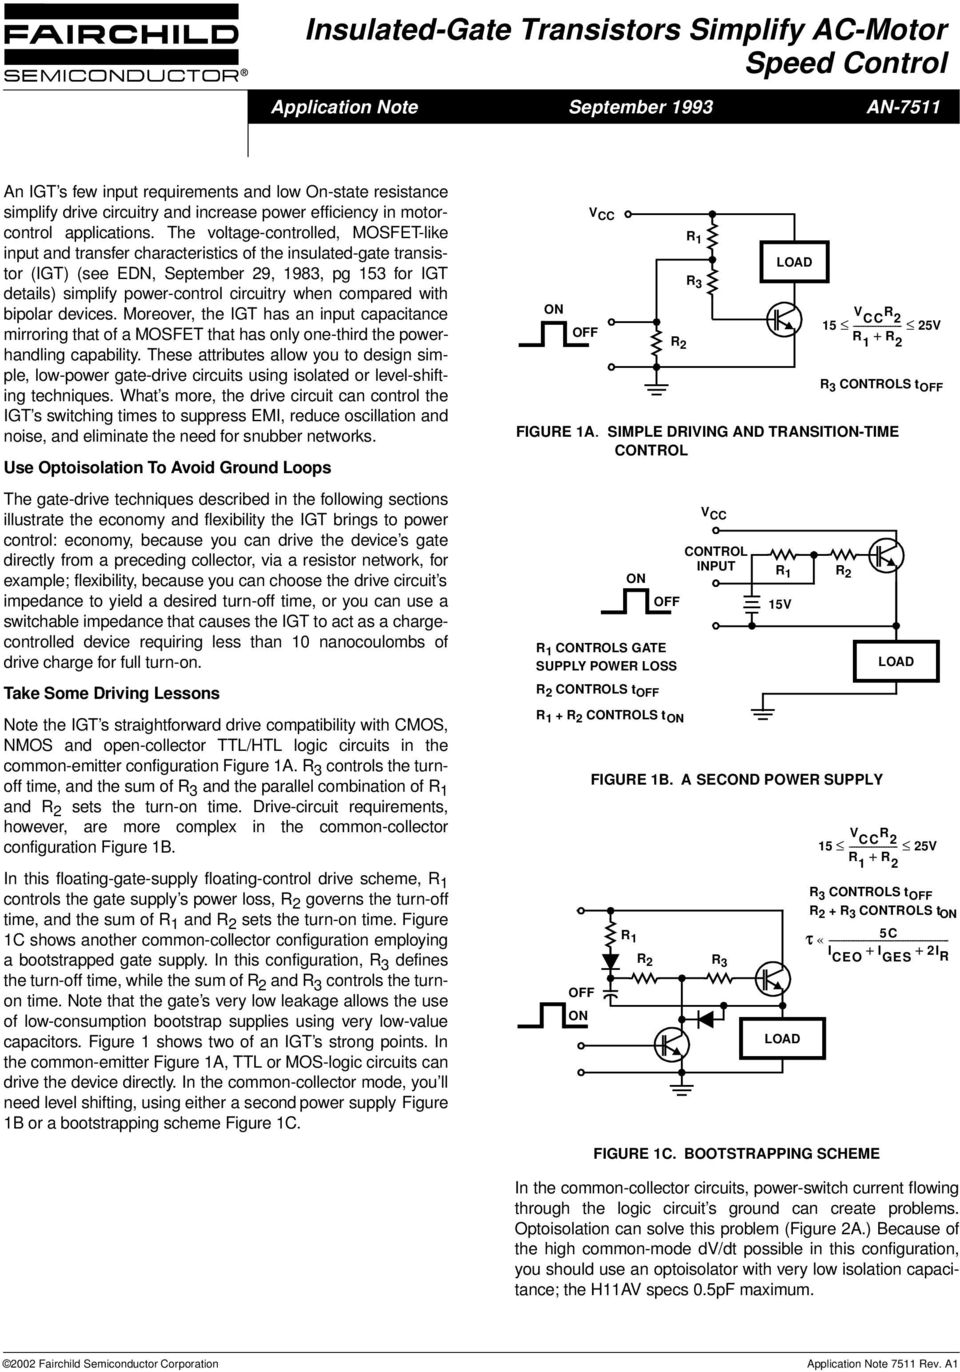 The volage-conrolled, MOSFET-like inpu and ransfer characerisics of he insulaed-gae ransisor () (see EDN, Sepember 29, 1983, pg 153 for deails) simplify power-conrol circuiry when compared wih